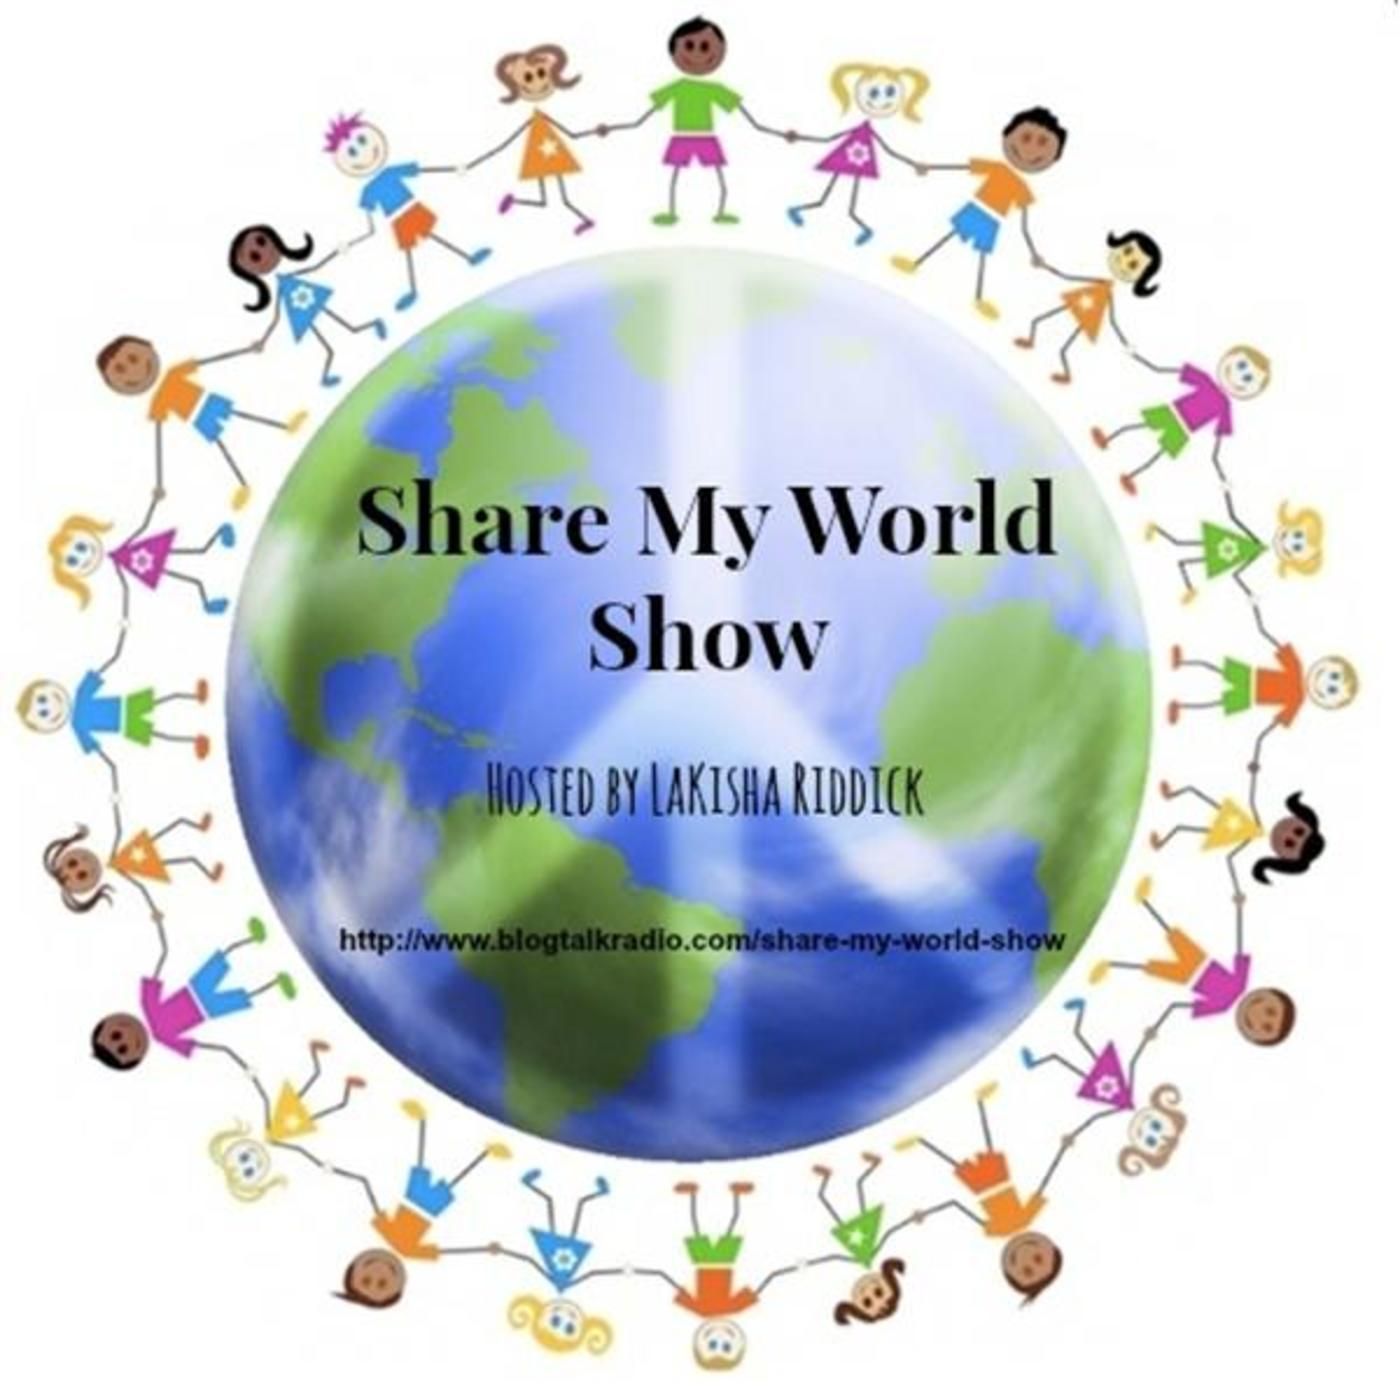 Share My World Show